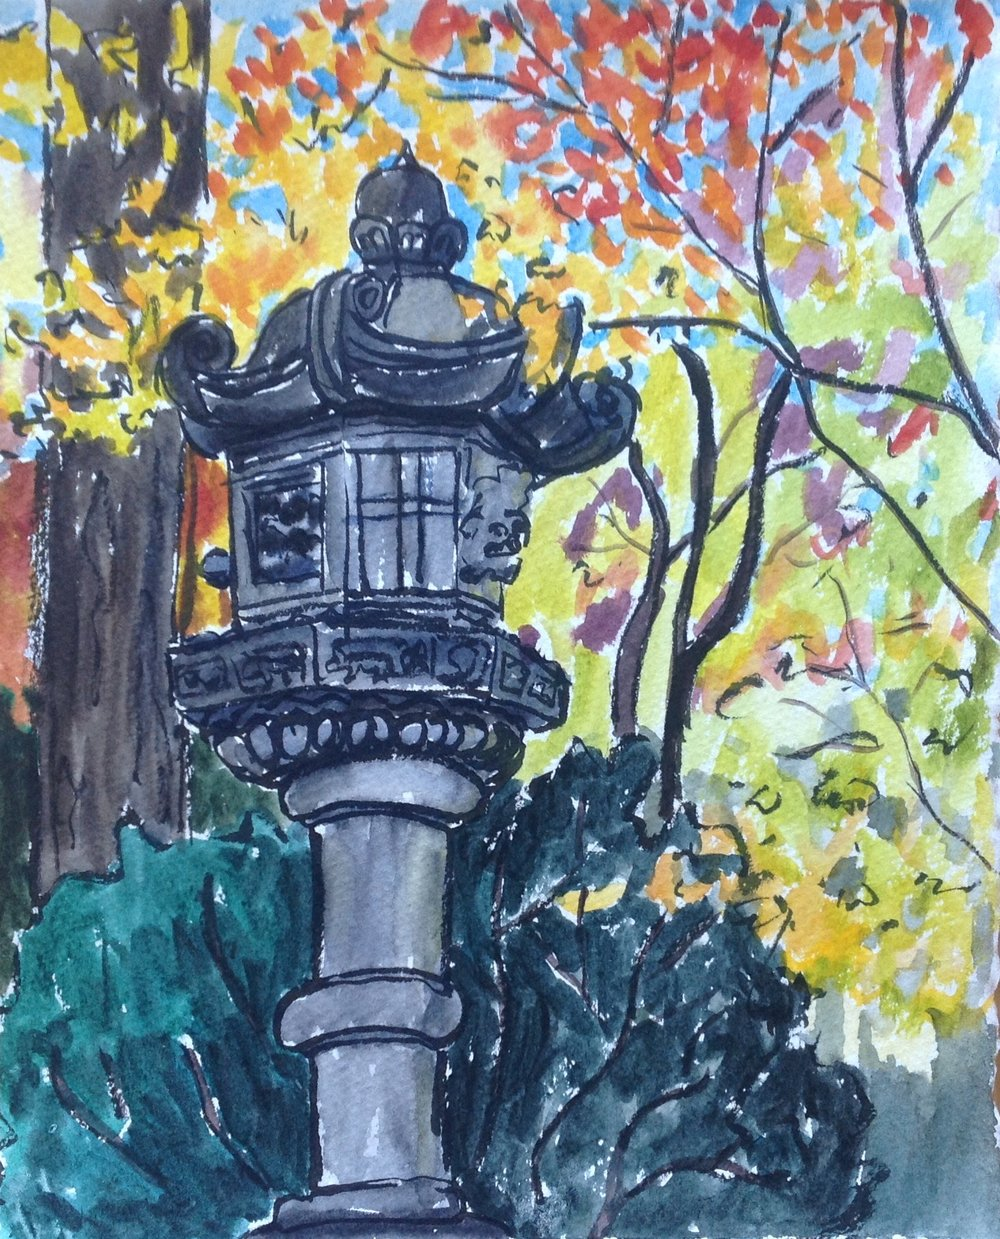 I just LOVE the color behind this stone lantern. Absolutely GORGEOUS and so much fun to paint! This is the most recent sketch I did at the garden and the foliage is really at its peak!